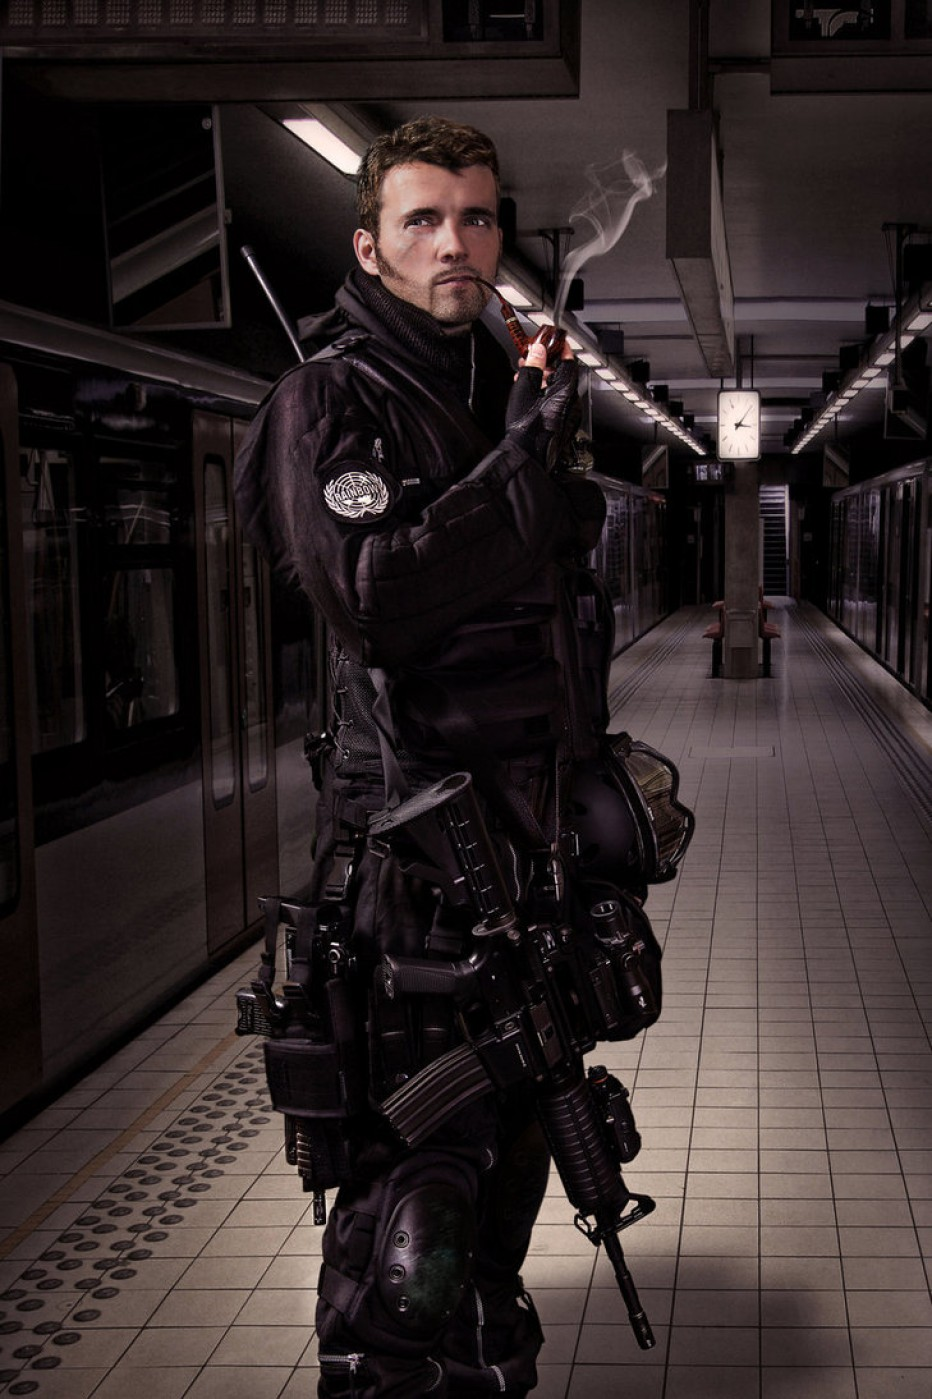 Rainbow-Six-Eddie-Price-Cosplay-2-Gamers-Heroes.jpg